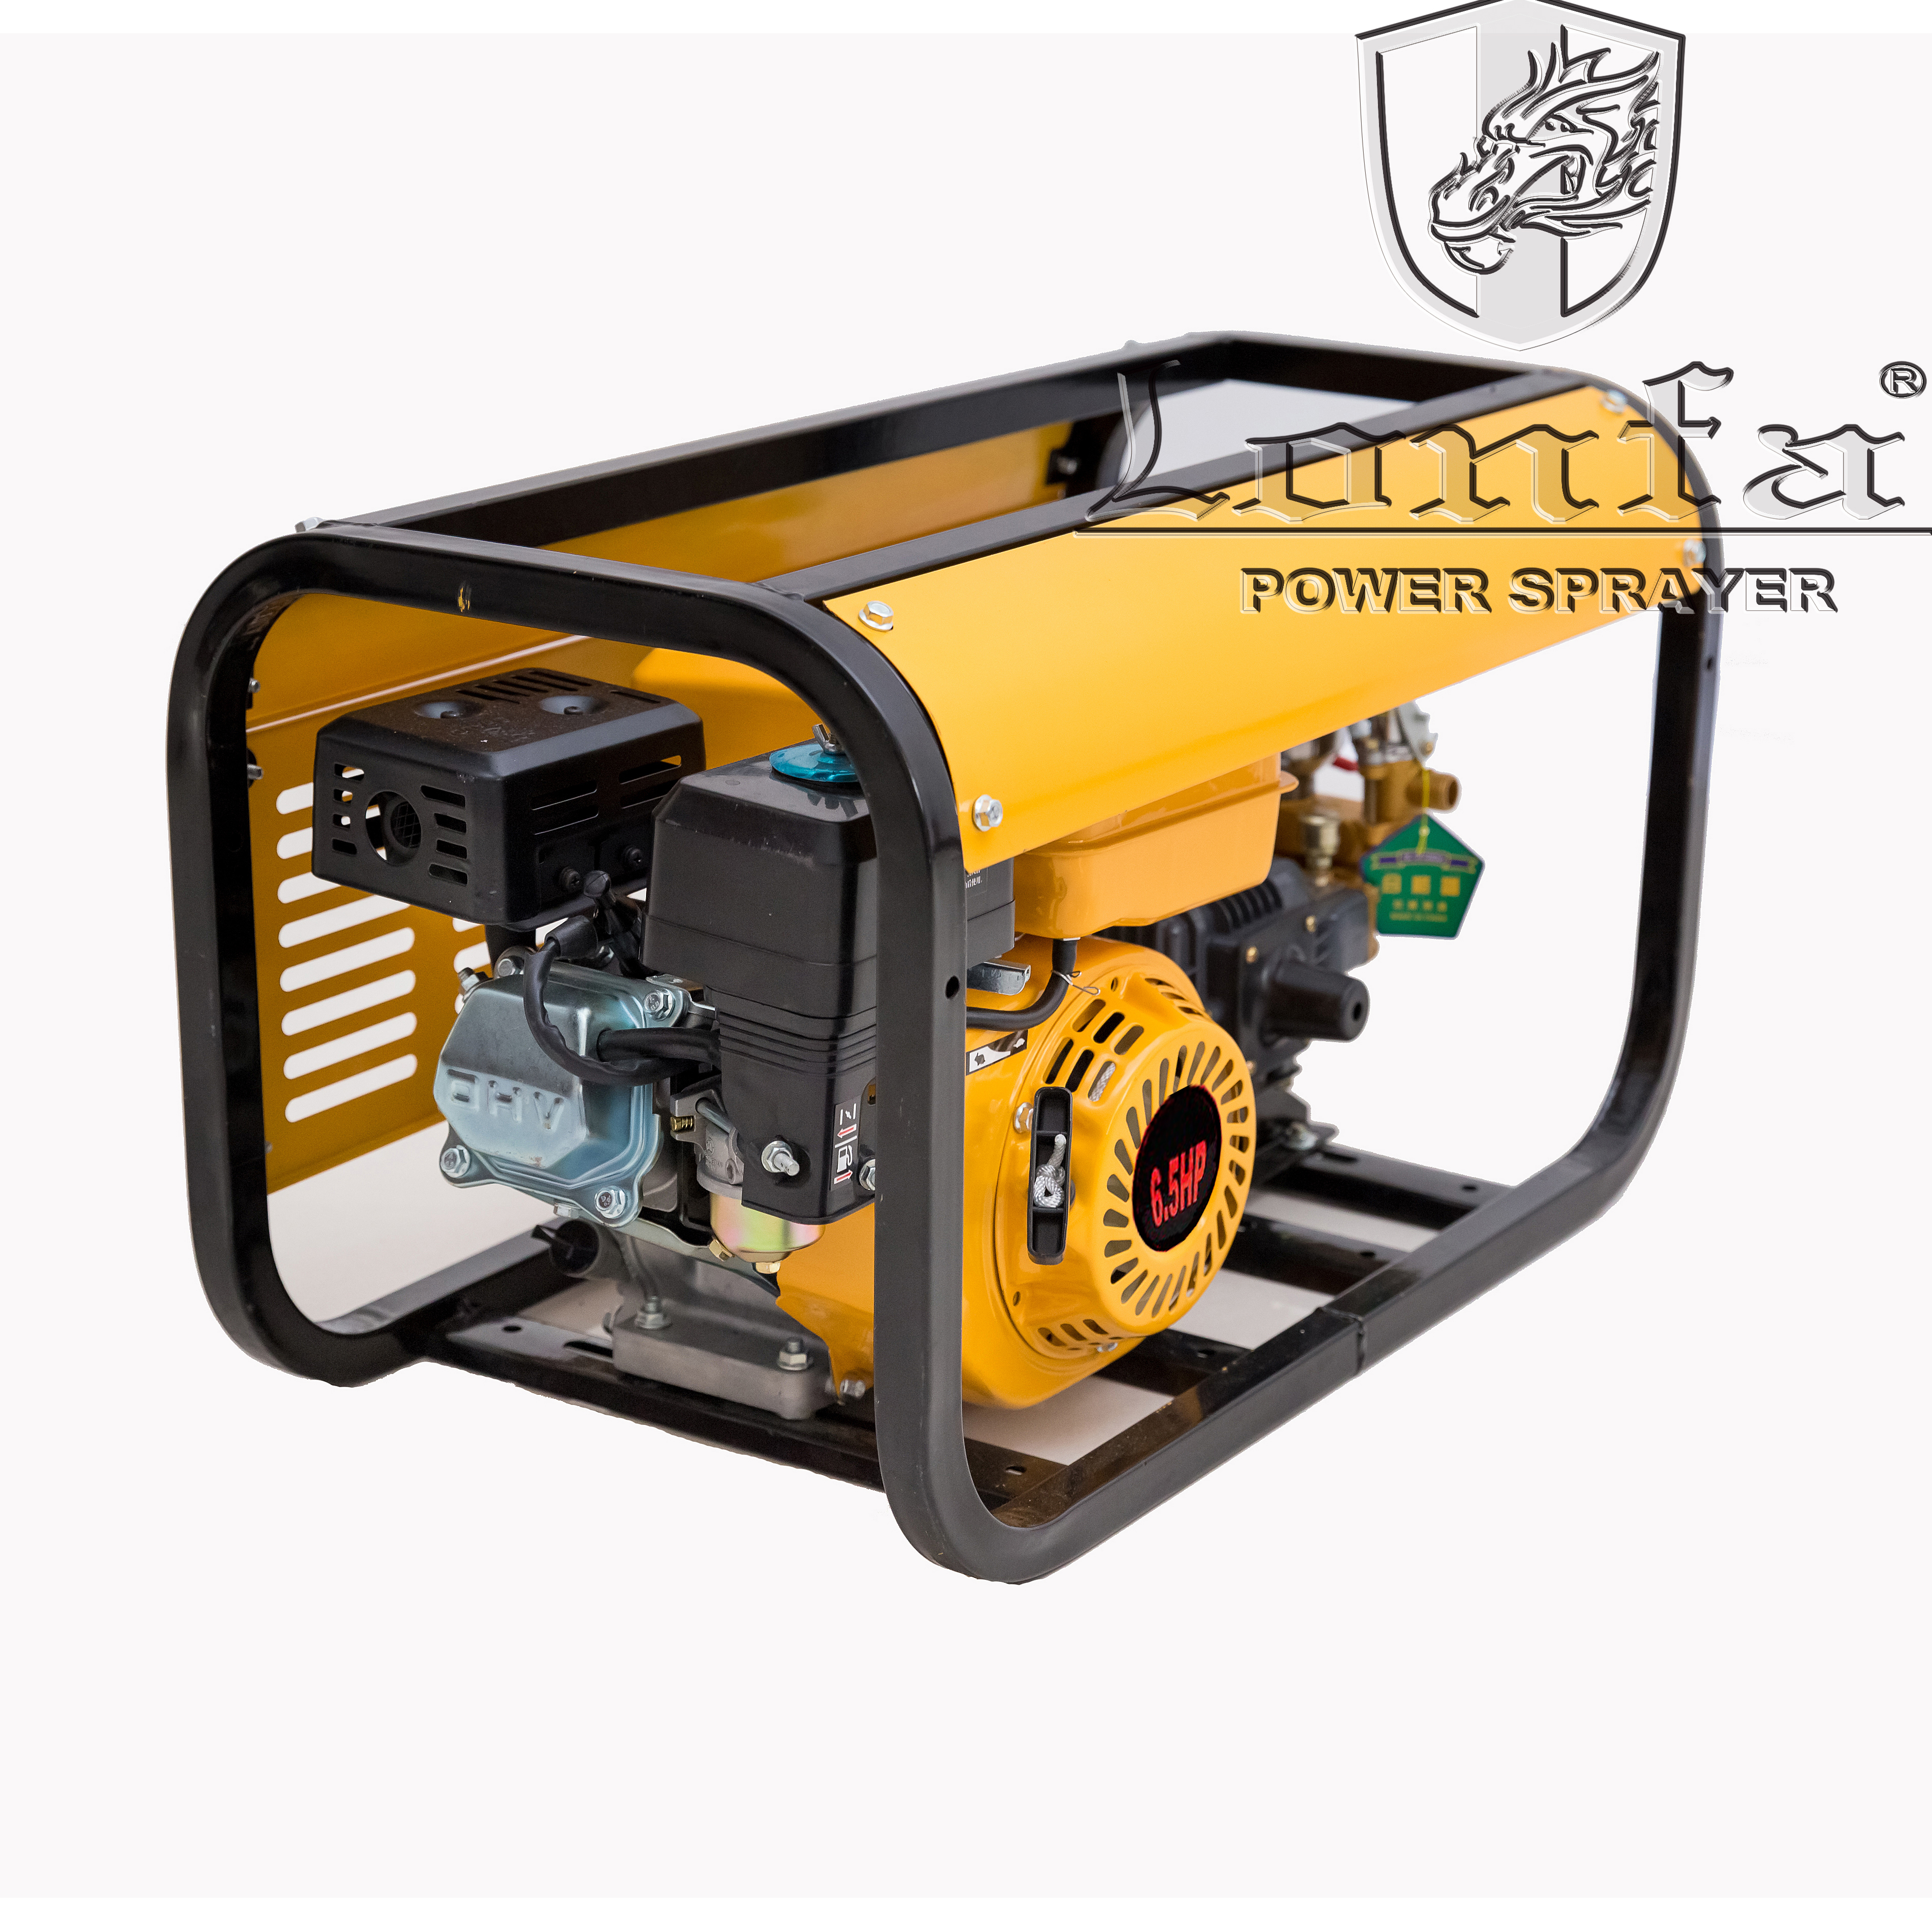 China quality high pressure agricultural 5.5hp gasoline power sprayer